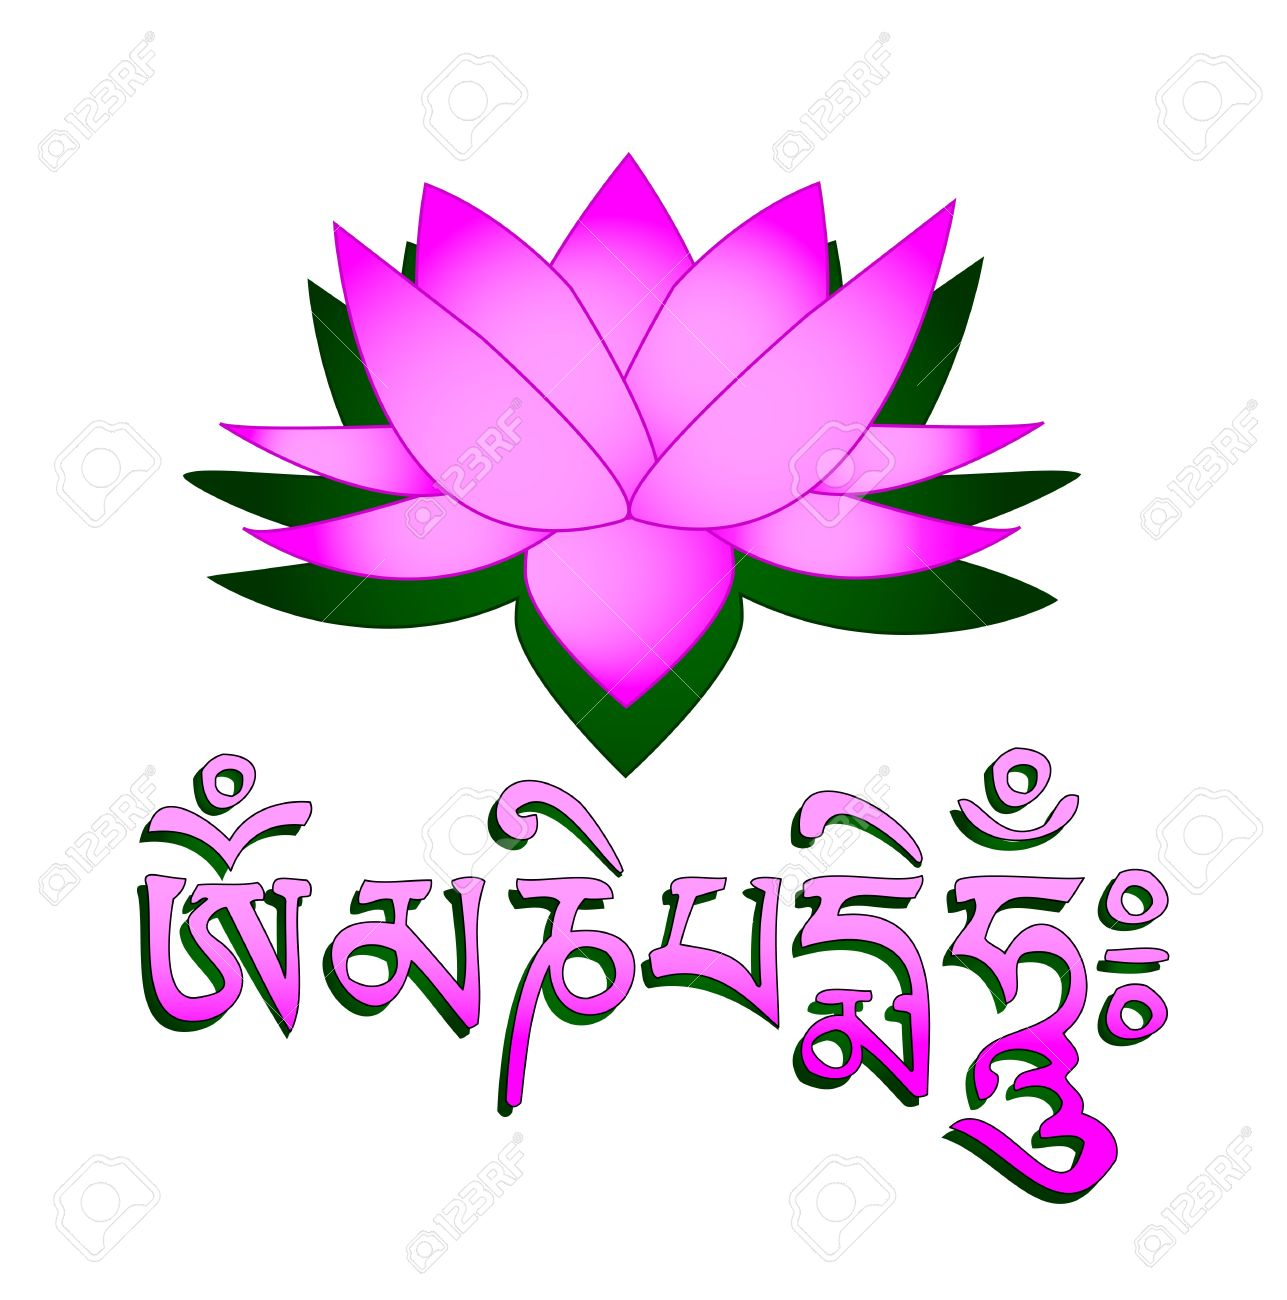 Lotus flower om symbol and mantra om mani padme hum royalty free lotus flower om symbol and mantra om mani padme hum stock vector mightylinksfo